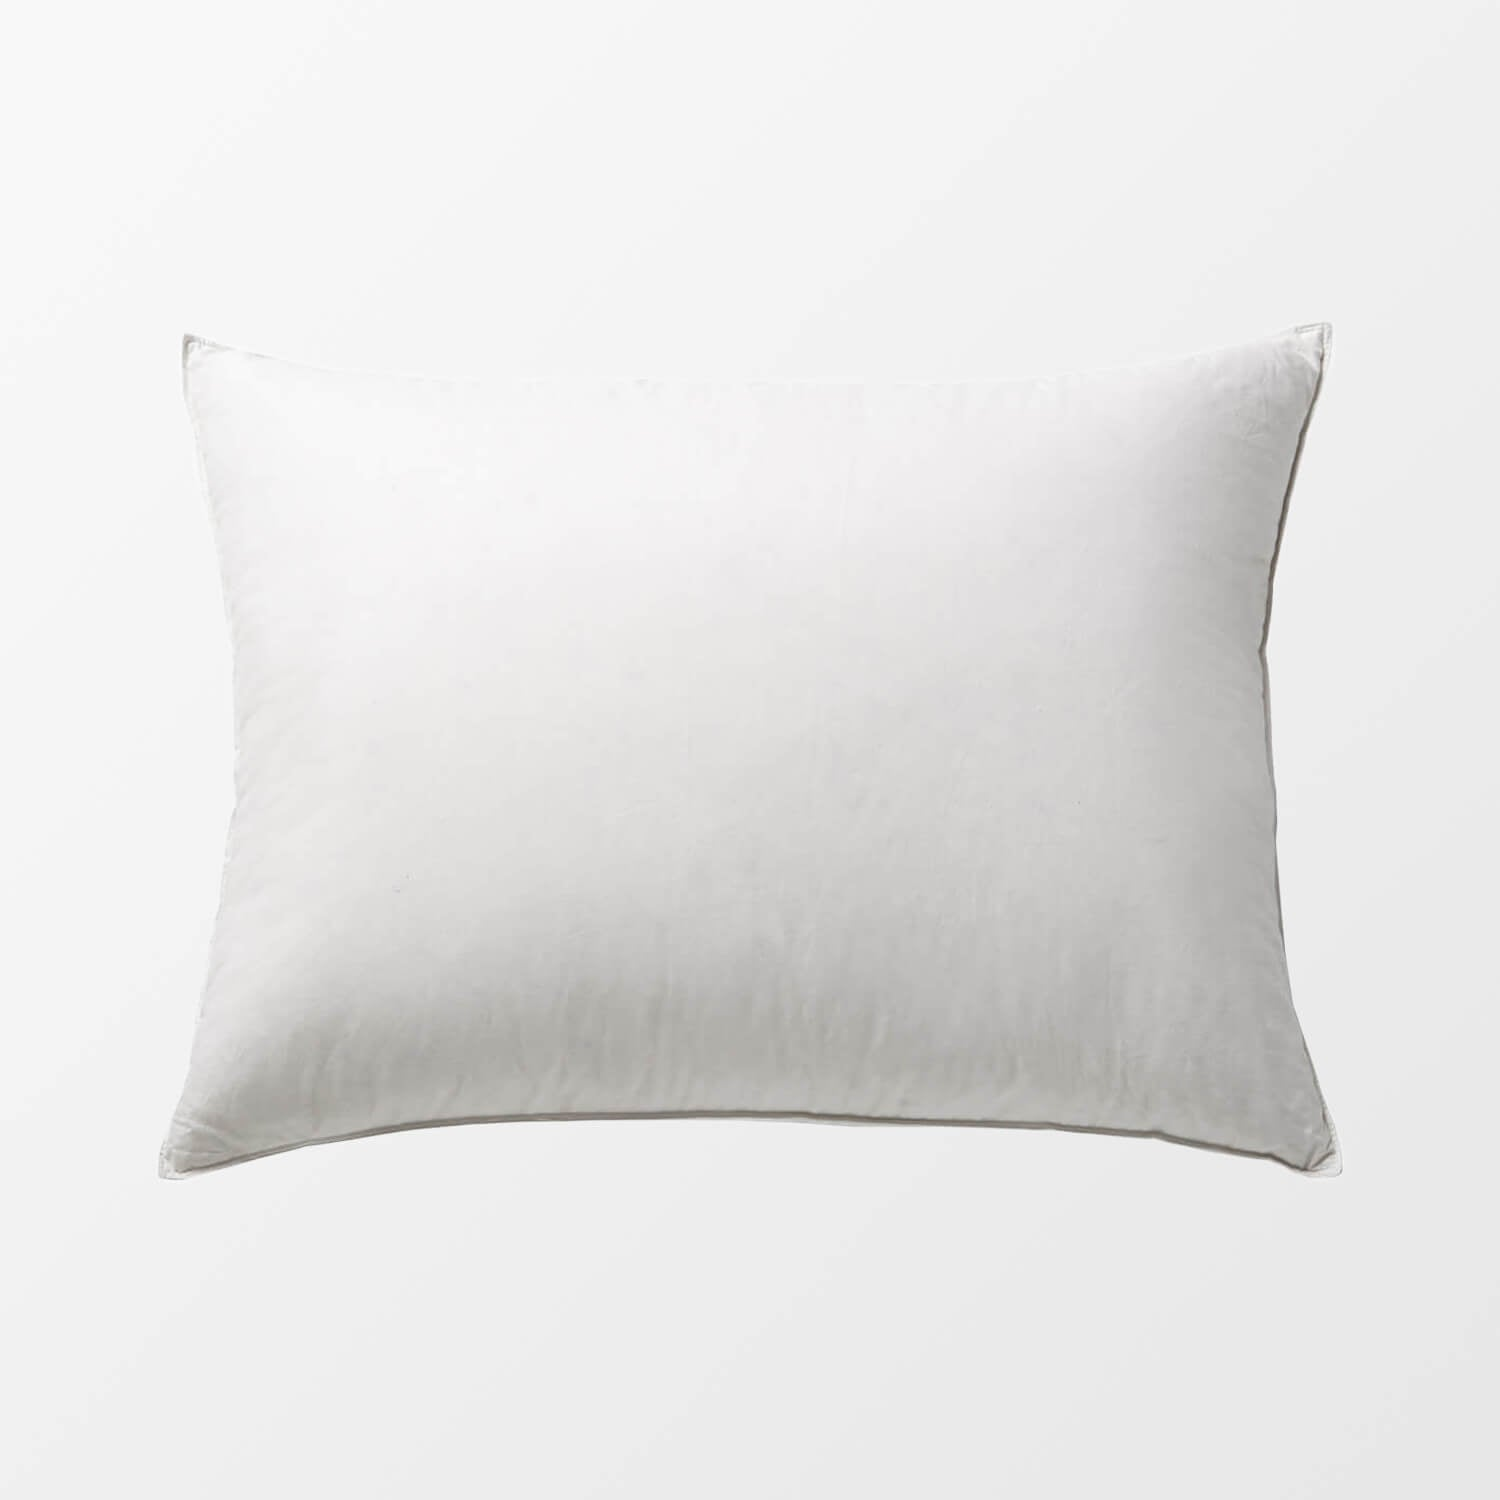 Hypoallergenic Down Alternative Standard Pillow Insert